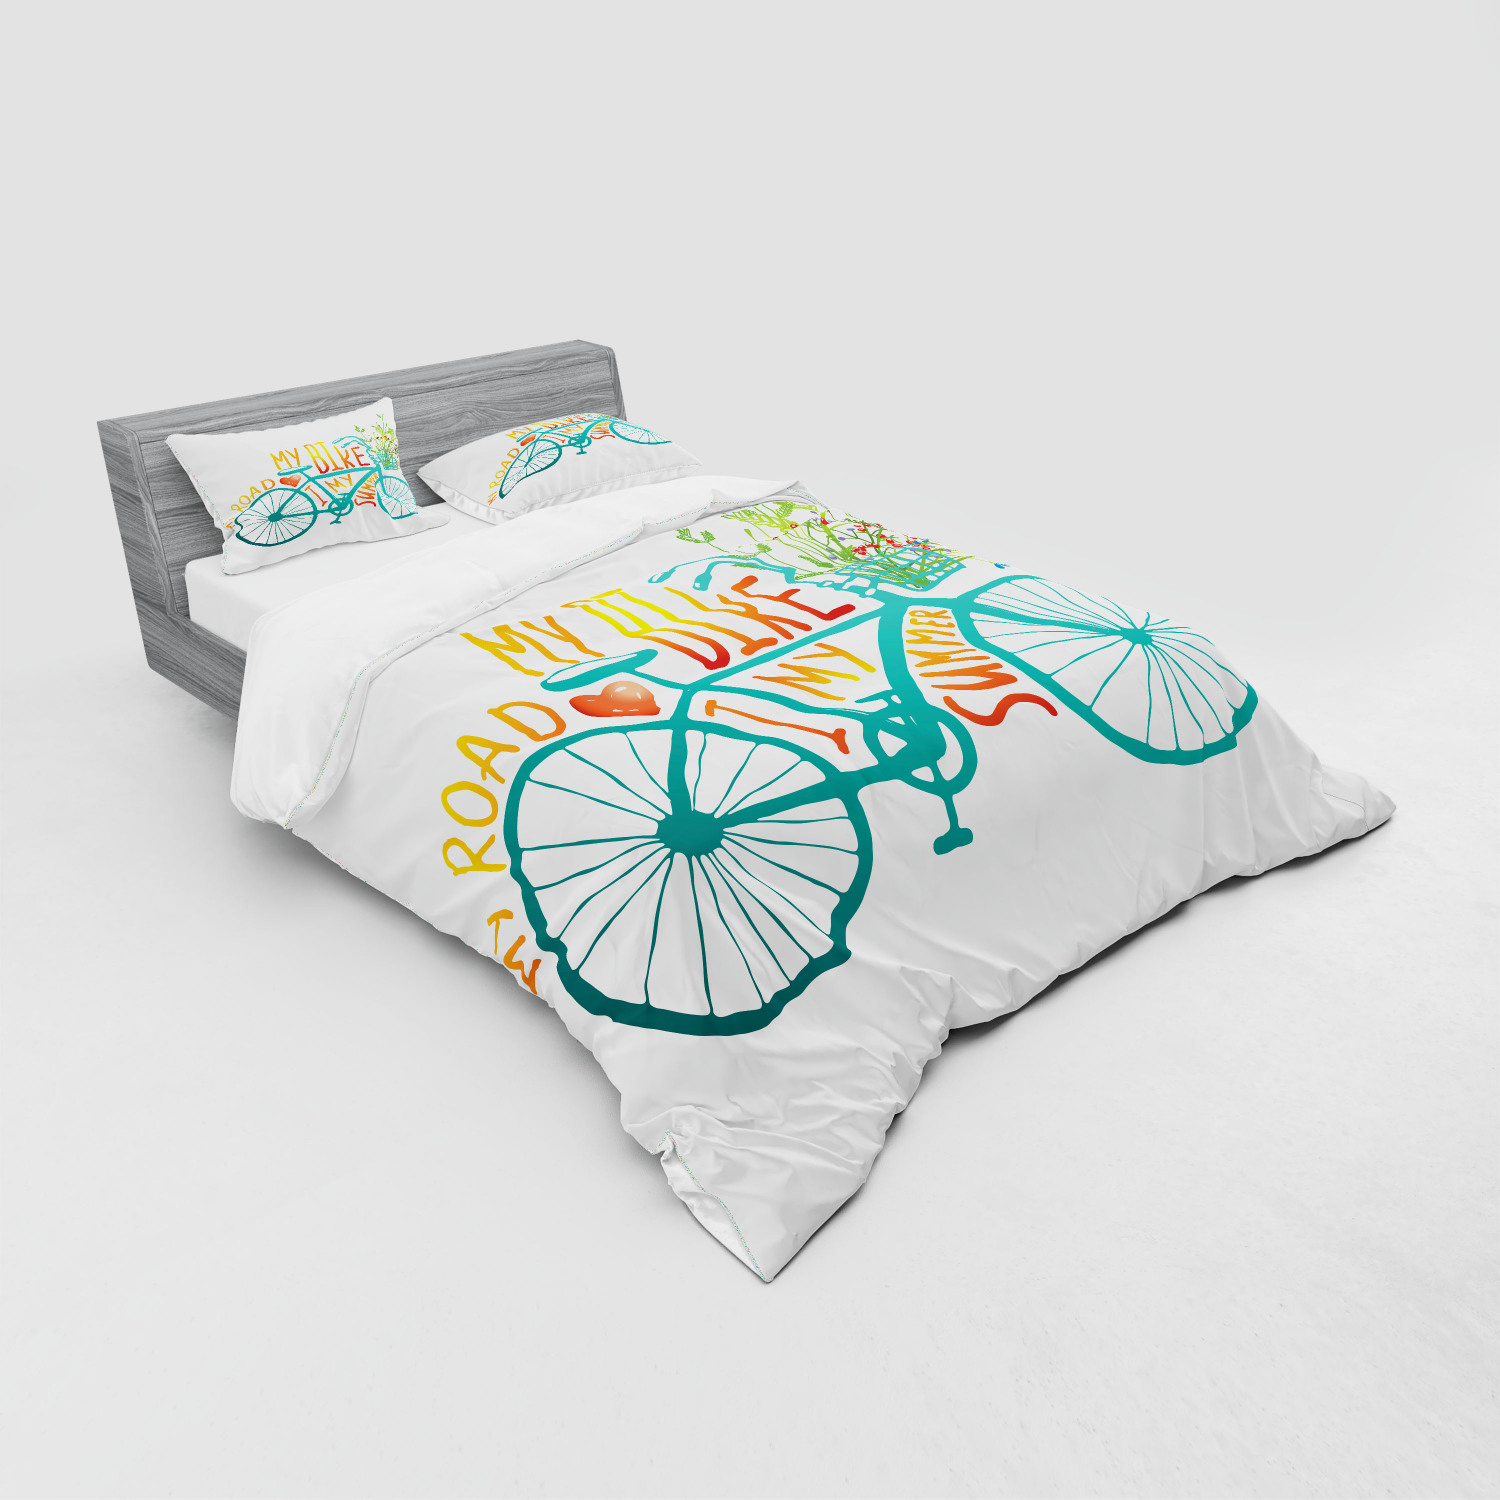 thumbnail 23 - Ambesonne Summer Bedding Set Duvet Cover Sham Fitted Sheet in 3 Sizes